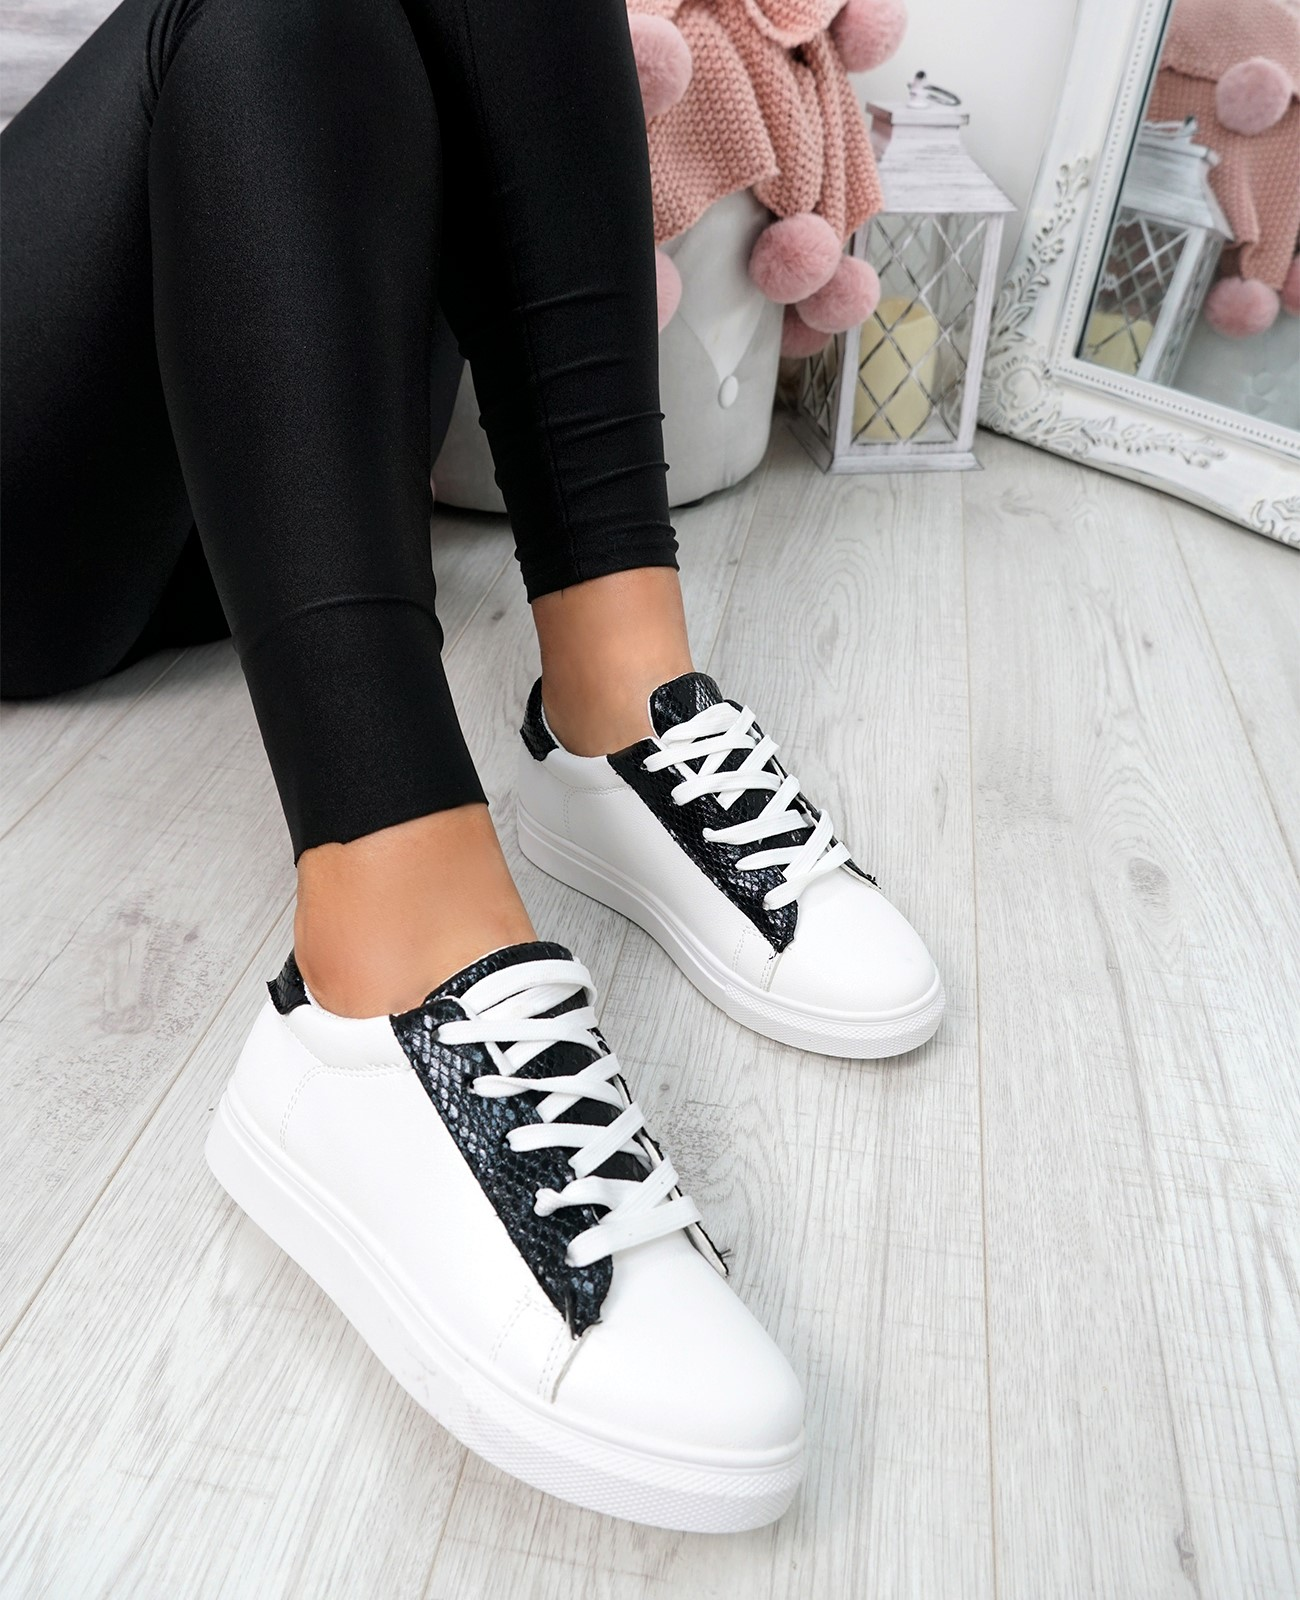 WOMENS-LADIES-SNAKE-SKIN-GLITTER-LACE-UP-TRAINERS-PLIMSOLLS-SNEAKERS-SHOES thumbnail 9